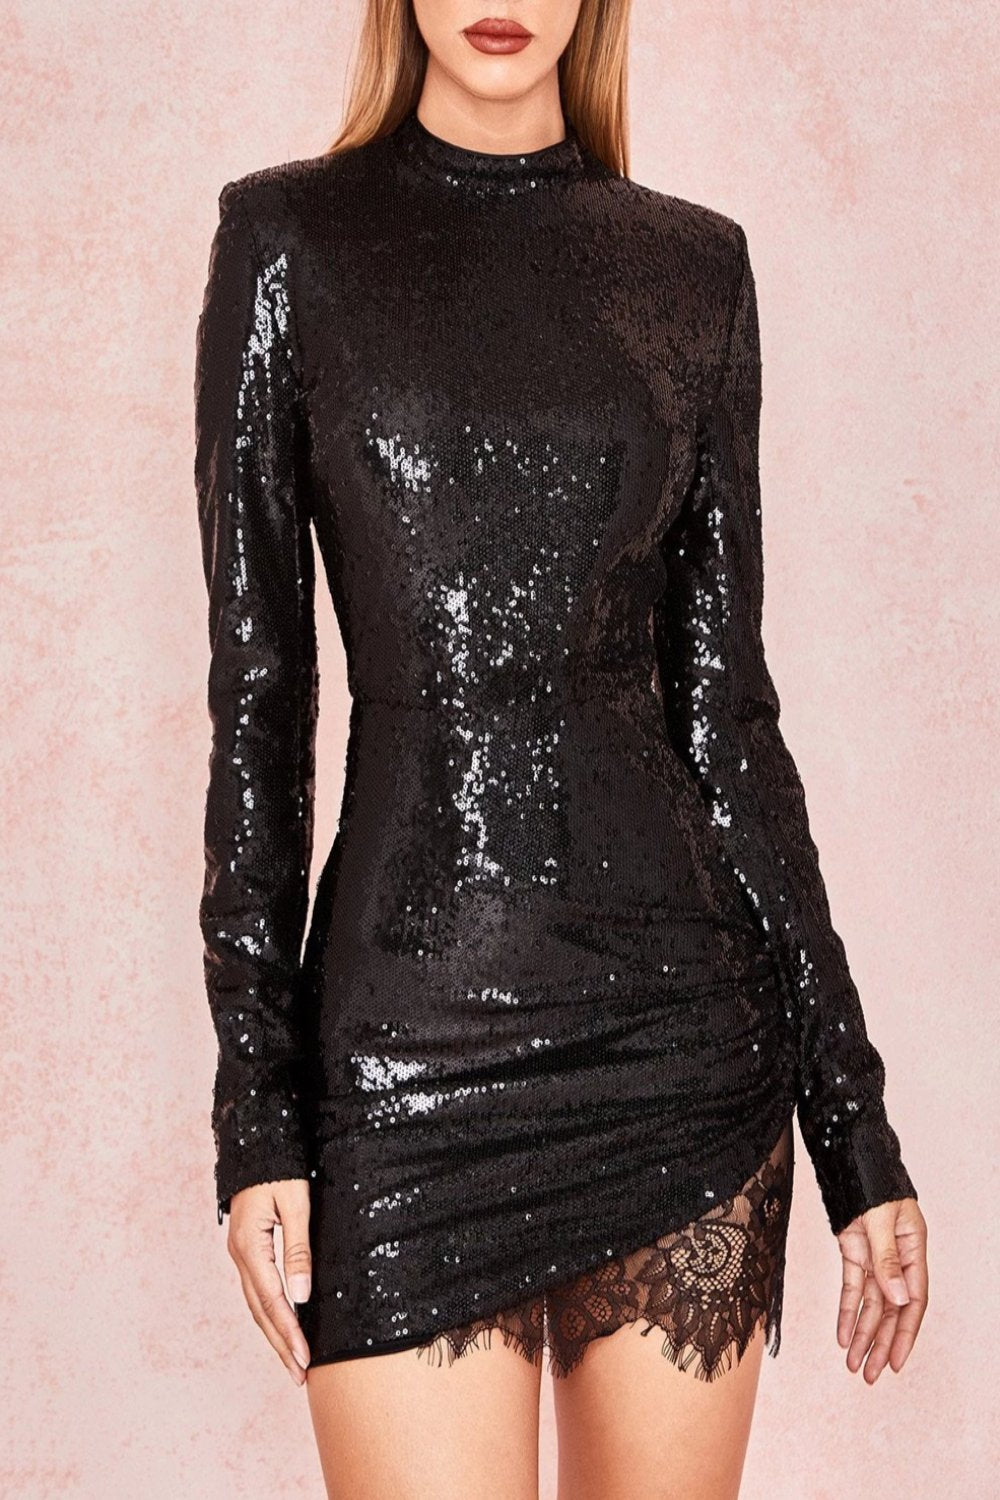 Black Sequinned Mini Dress - Limited Edition